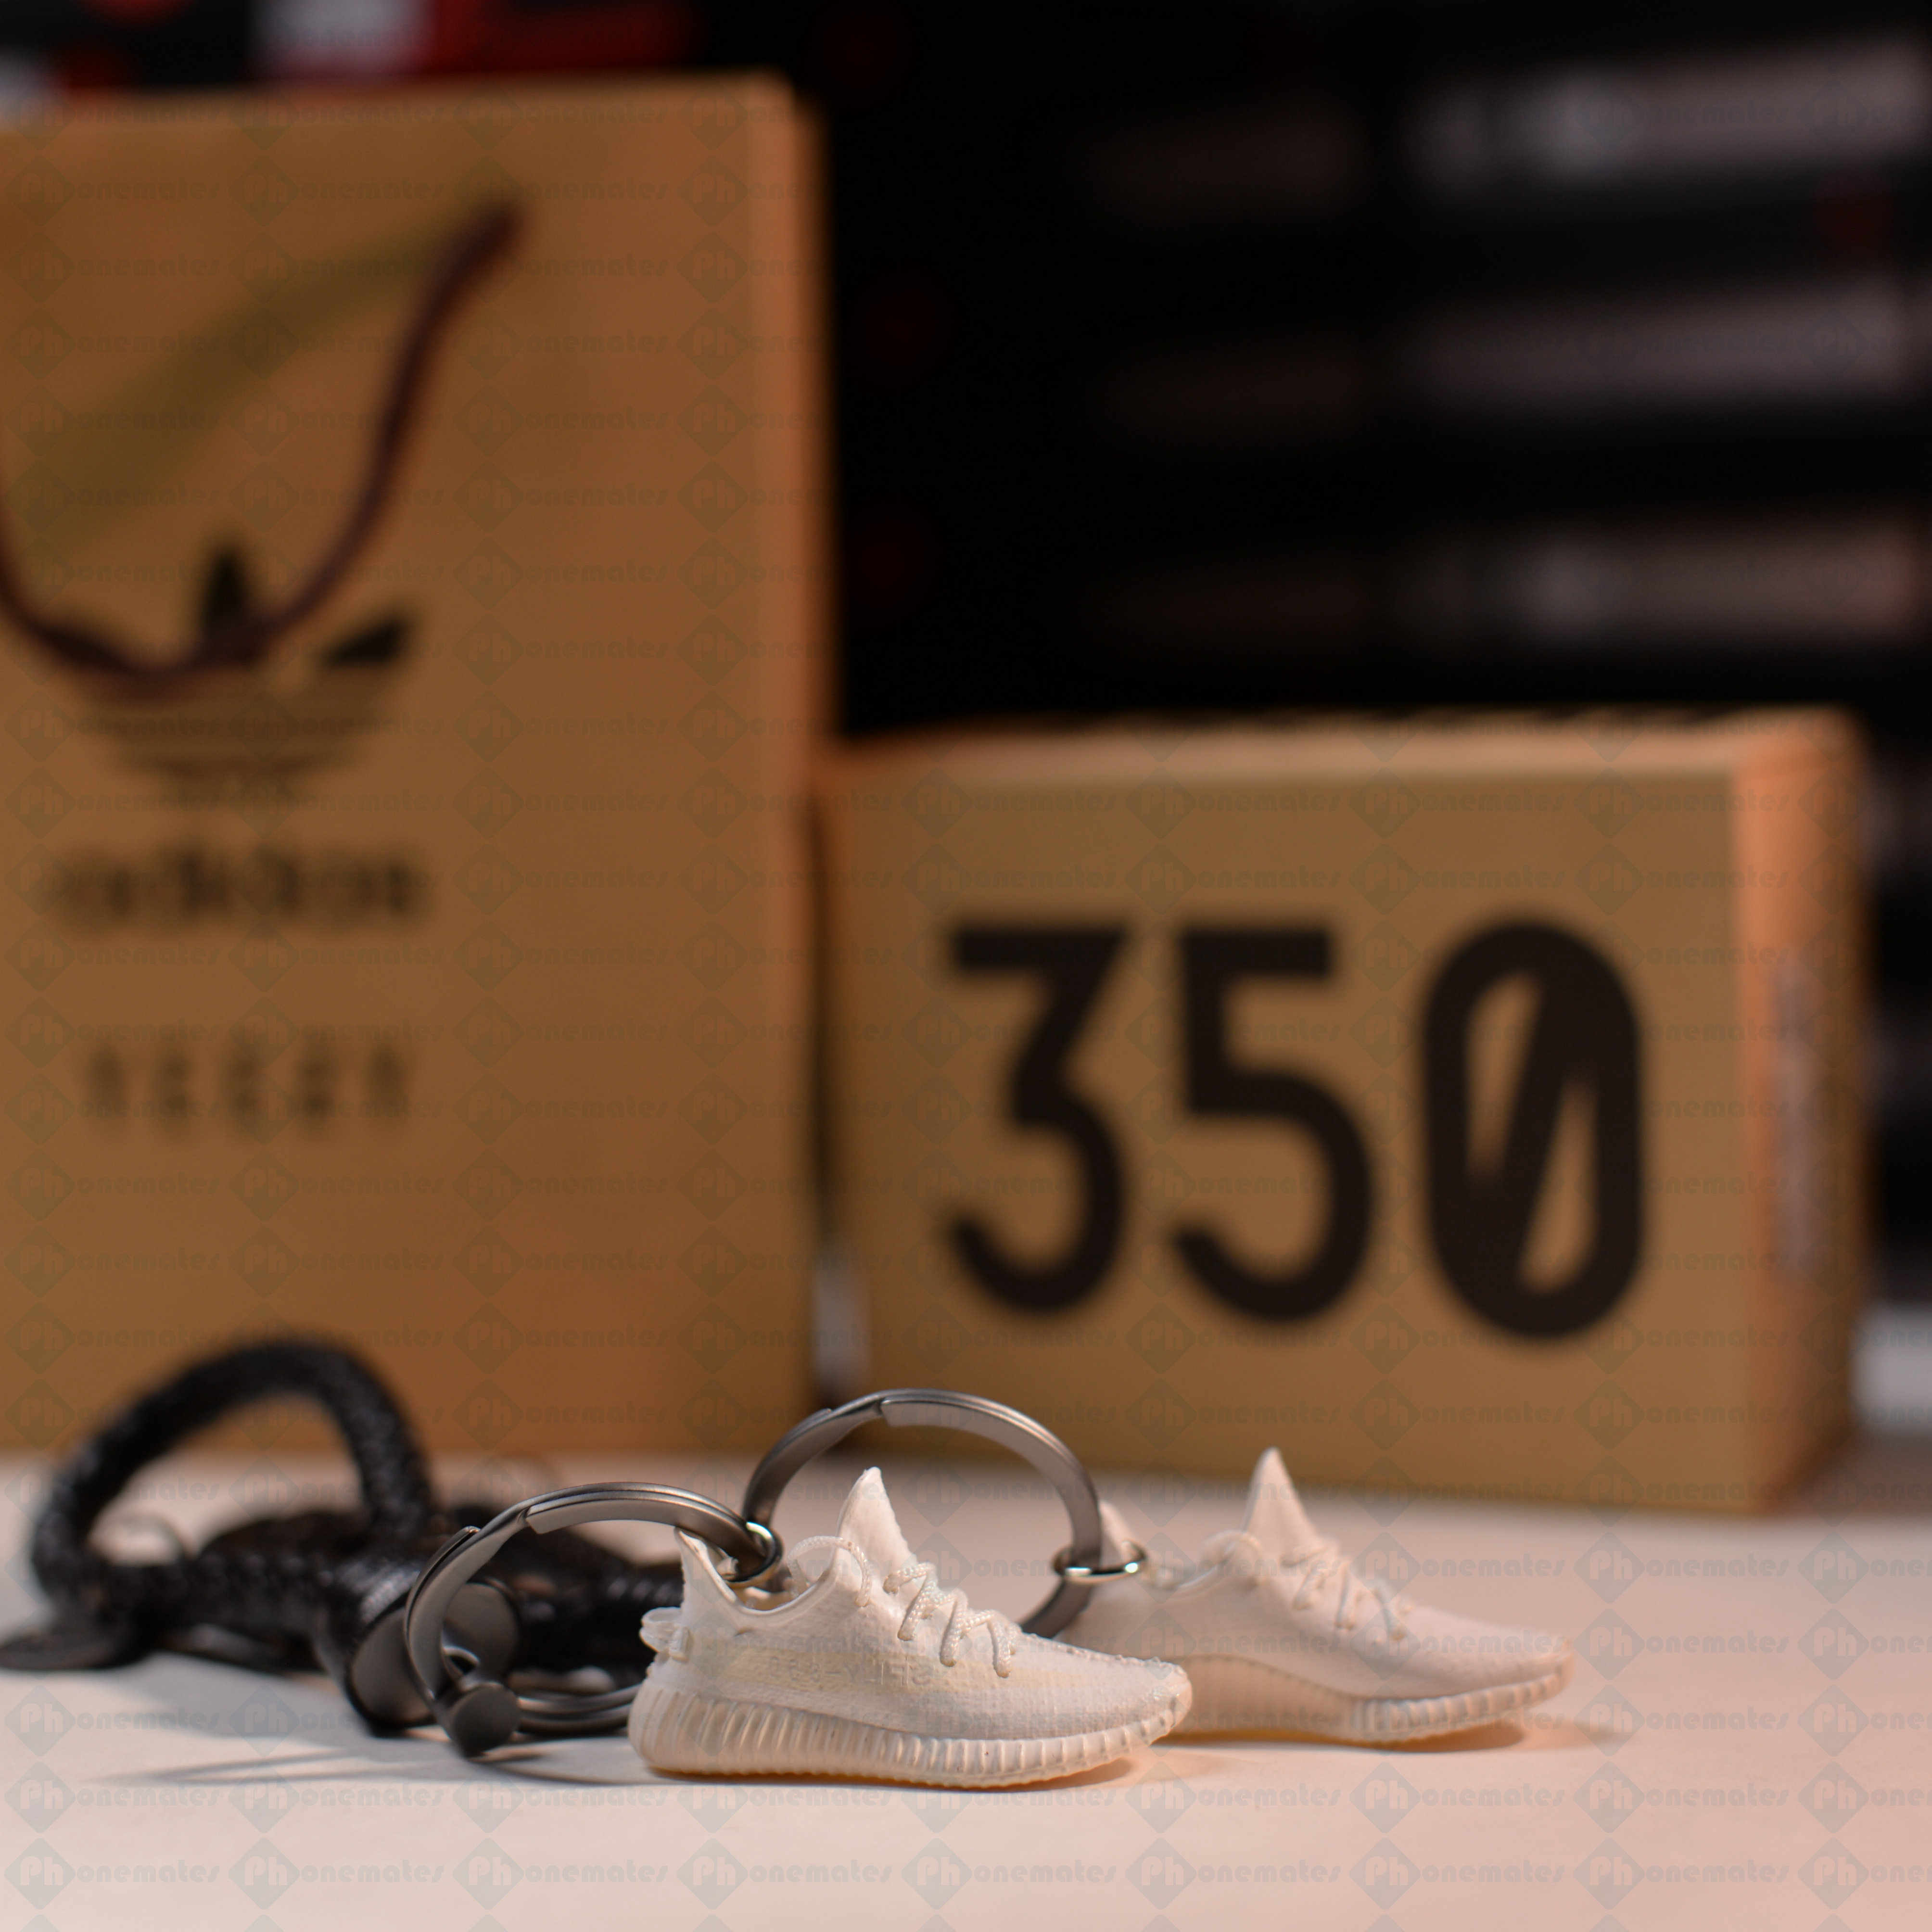 136b37fb1a2f Yeezy Boost 350 V2 Cream White 3D Mini Sneaker Keychains with Box and Bag